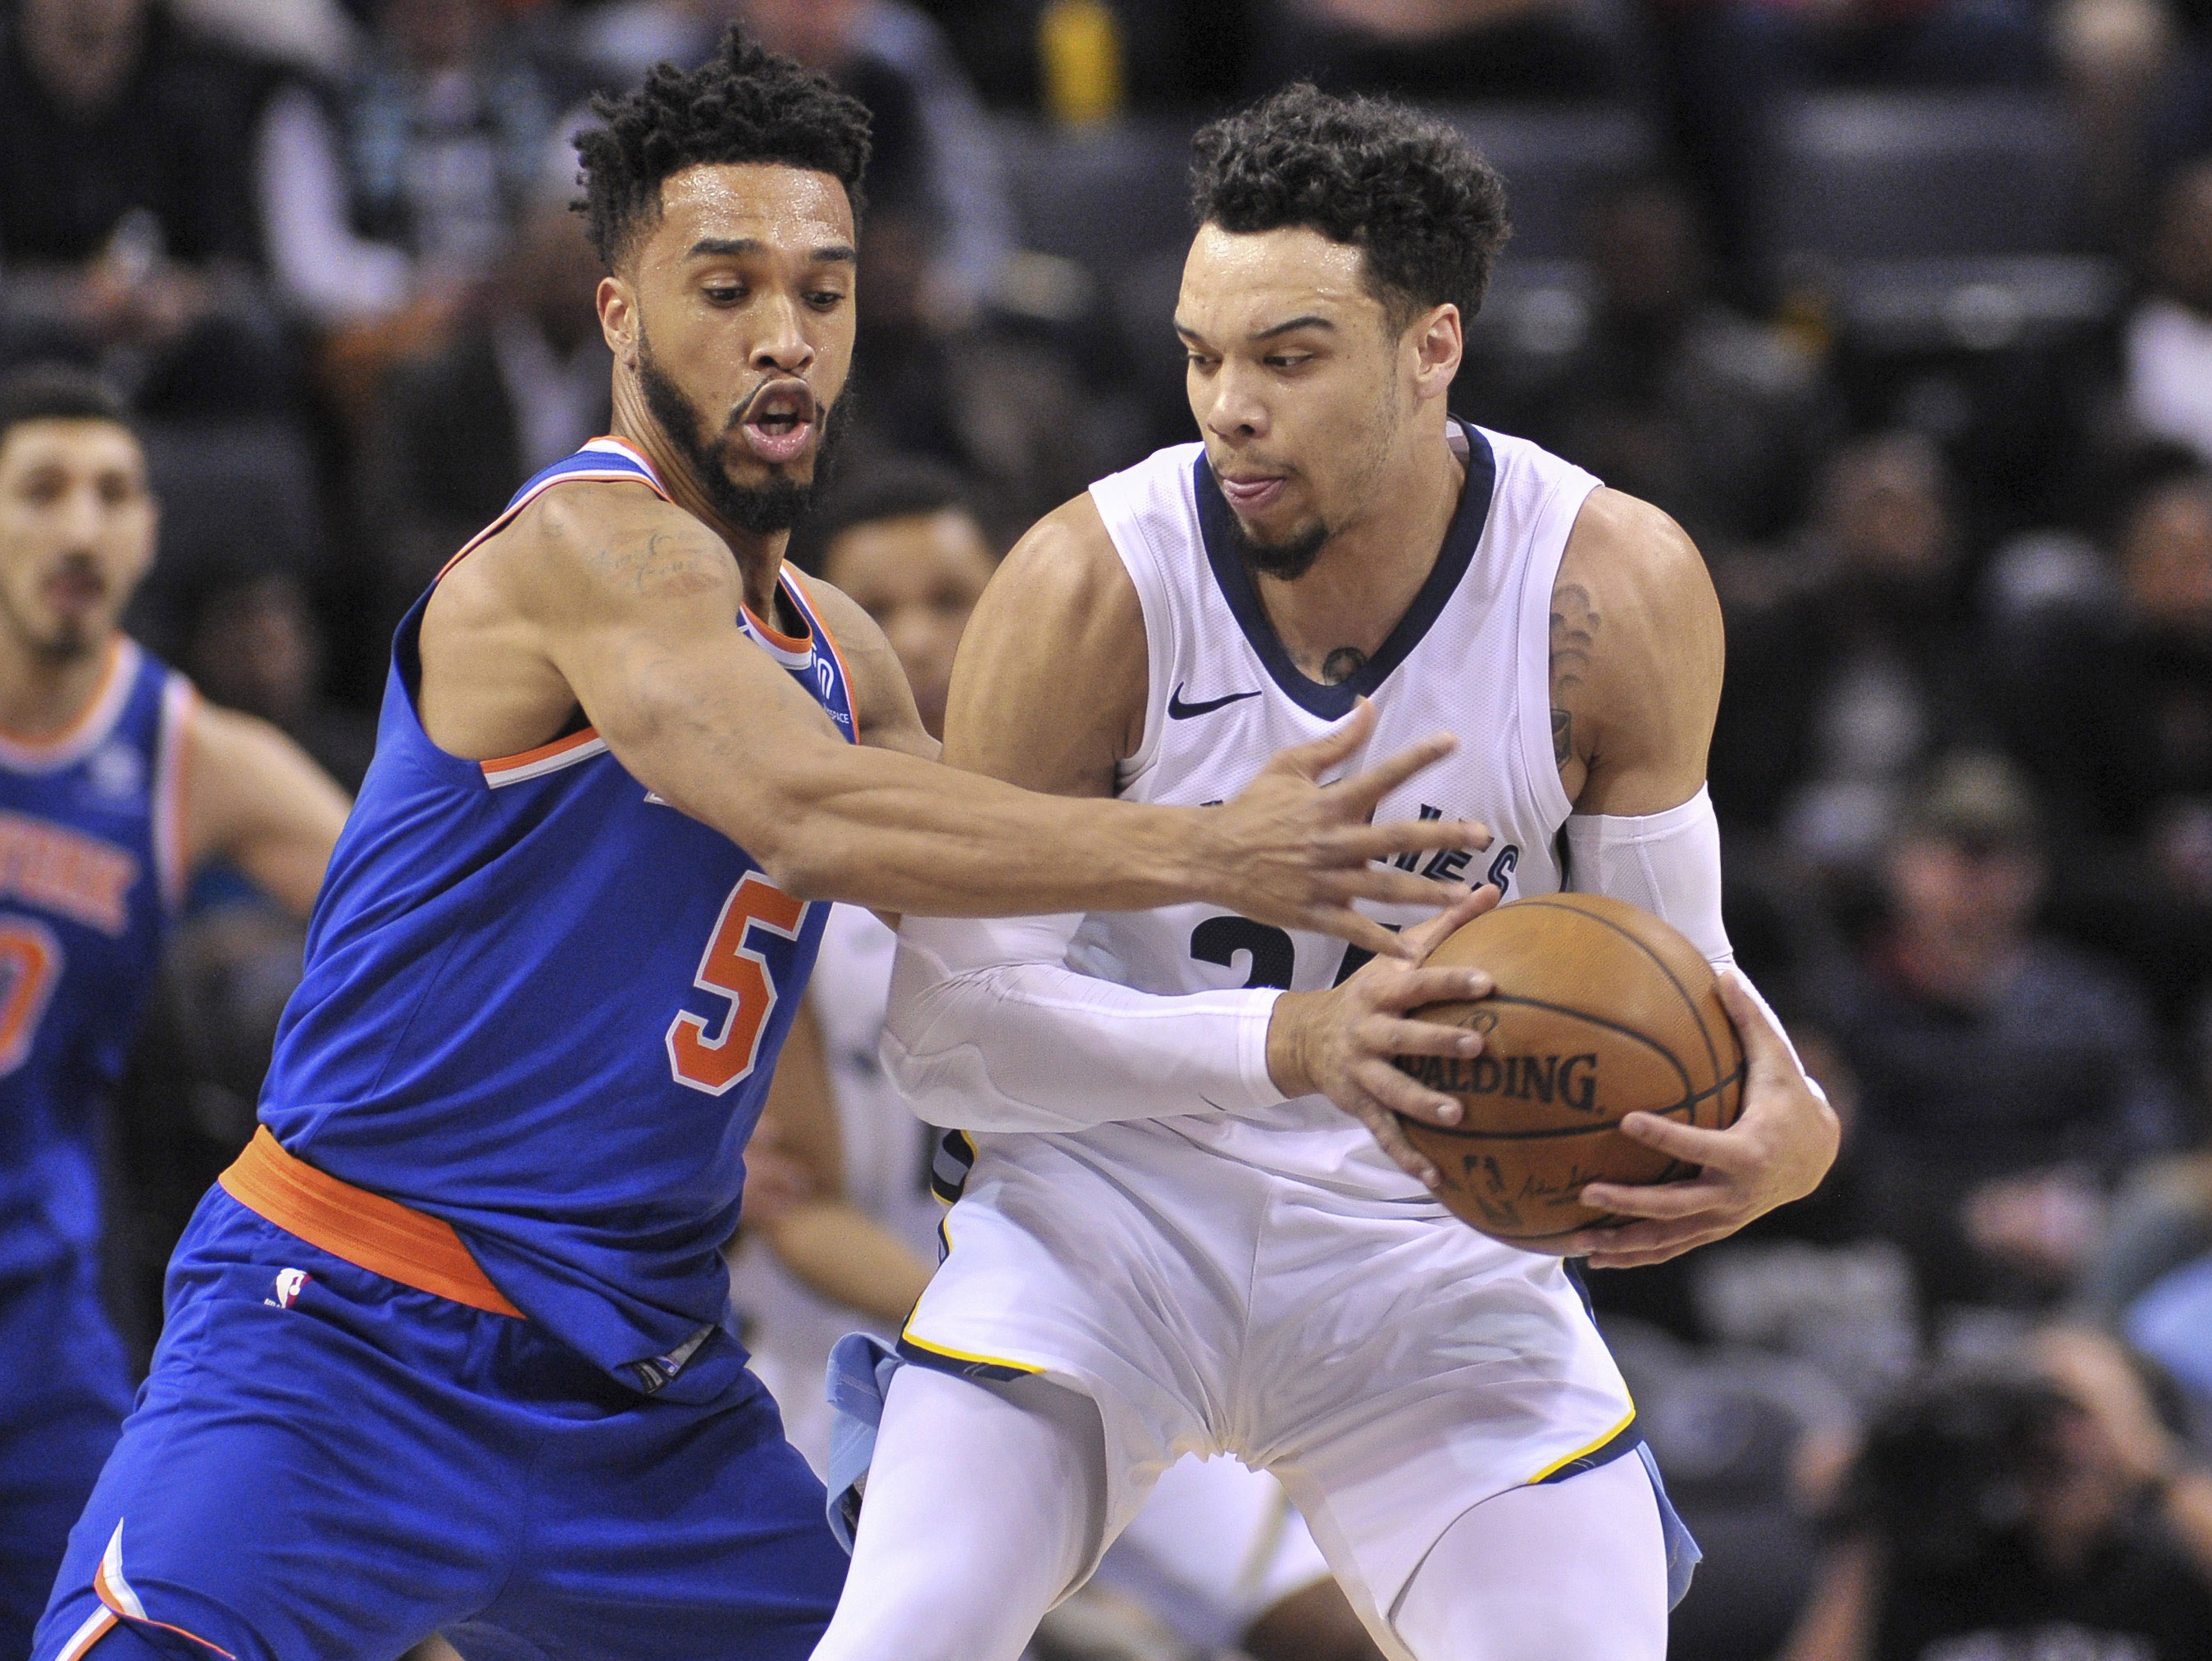 Courtney Lee's game of ups and downs gives way to Knicks' loss